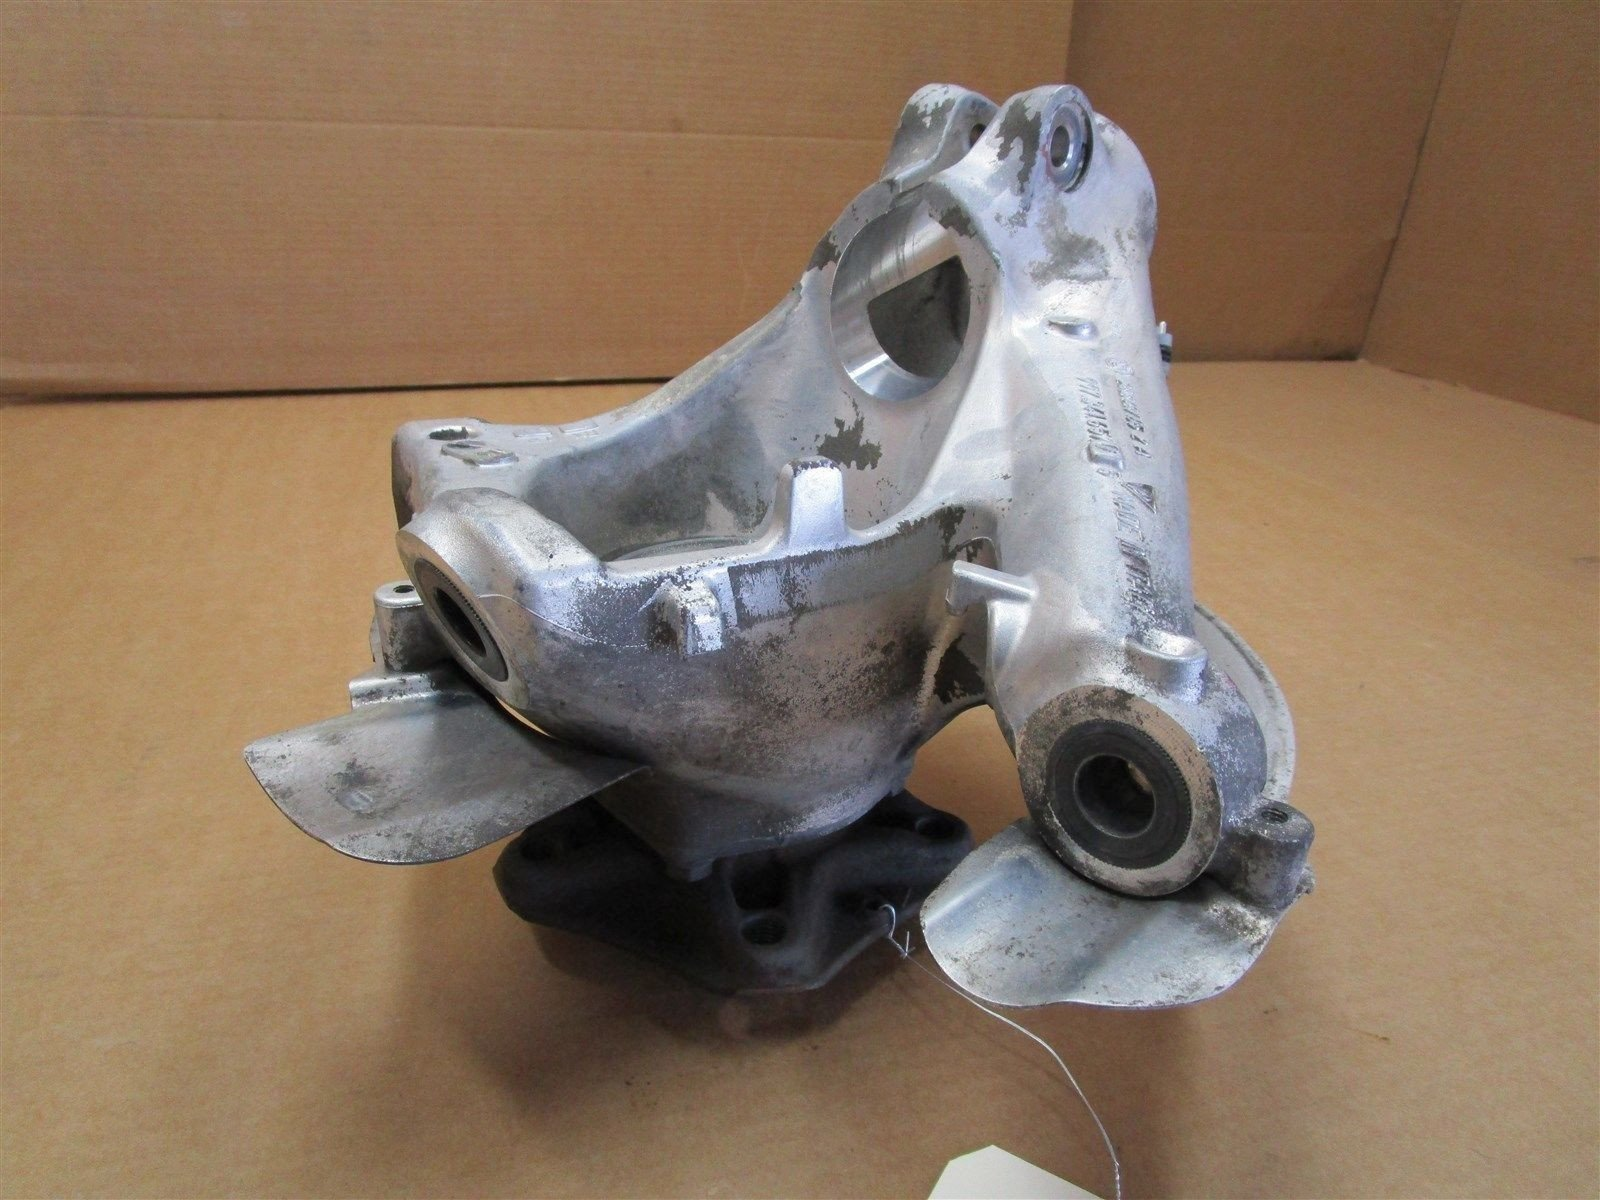 05 Boxster RWD Porsche 987 L Front HUB STEERING KNUCKLE 99734165705 48,989